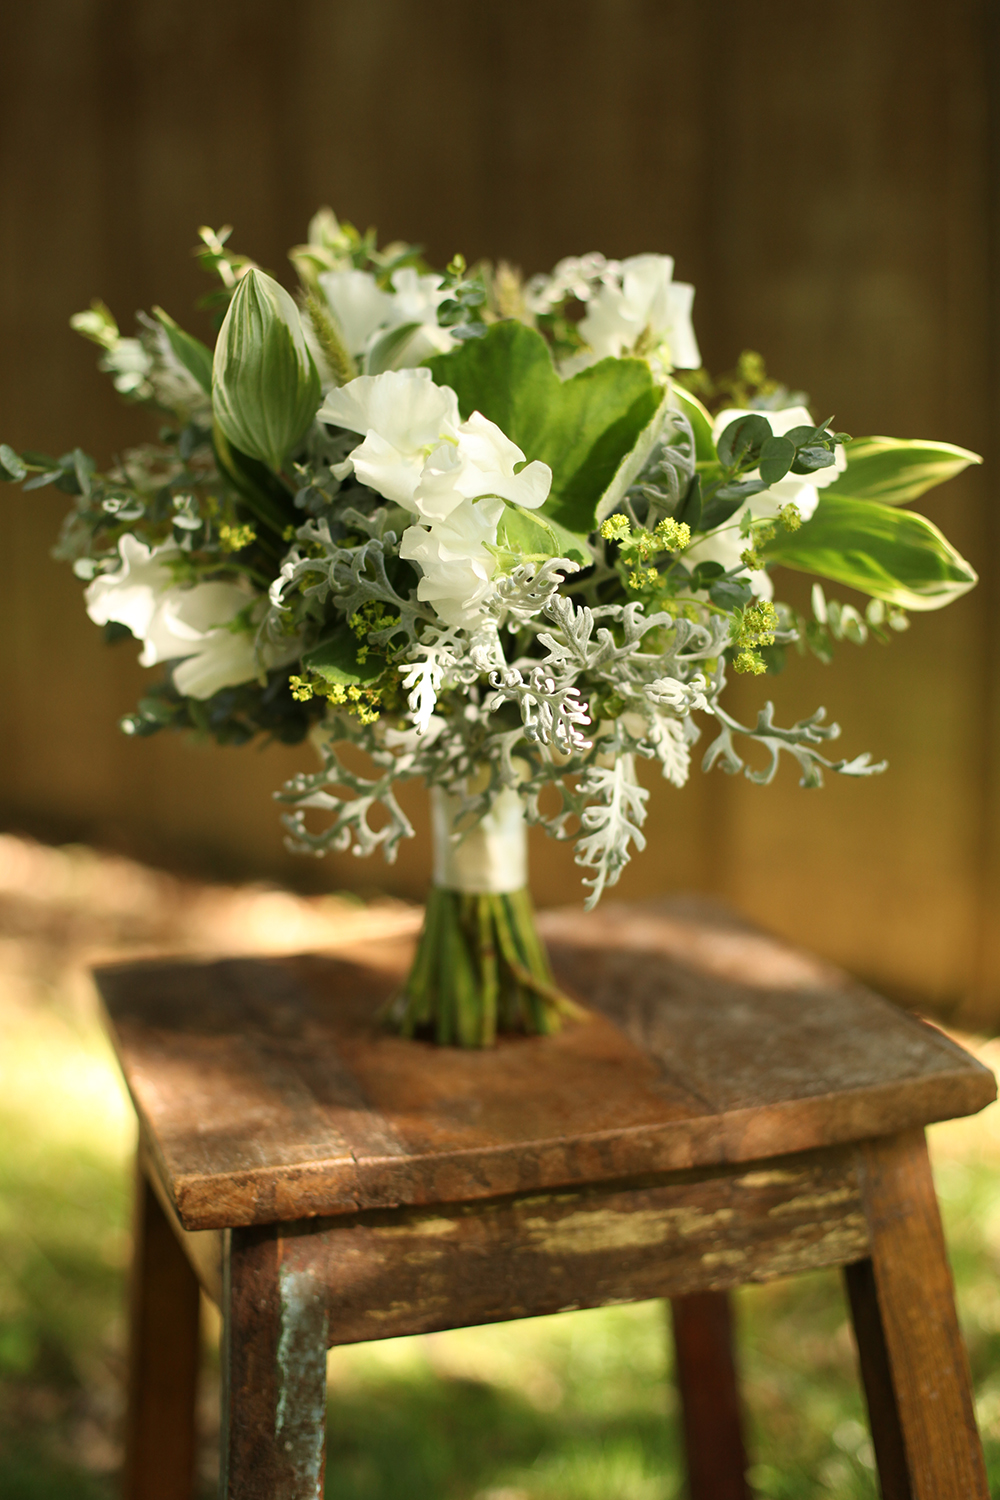 bridesmaid bouquet by wedding florist Floral Verde LLC in Cincinnati, Ohio; with white Japanese sweet pea, bunny tail grass, alchemilla, variegated Solomon's Seal., scented geranium, gunnii eucalyptus, baby blue eucalyptus and dusty miller.